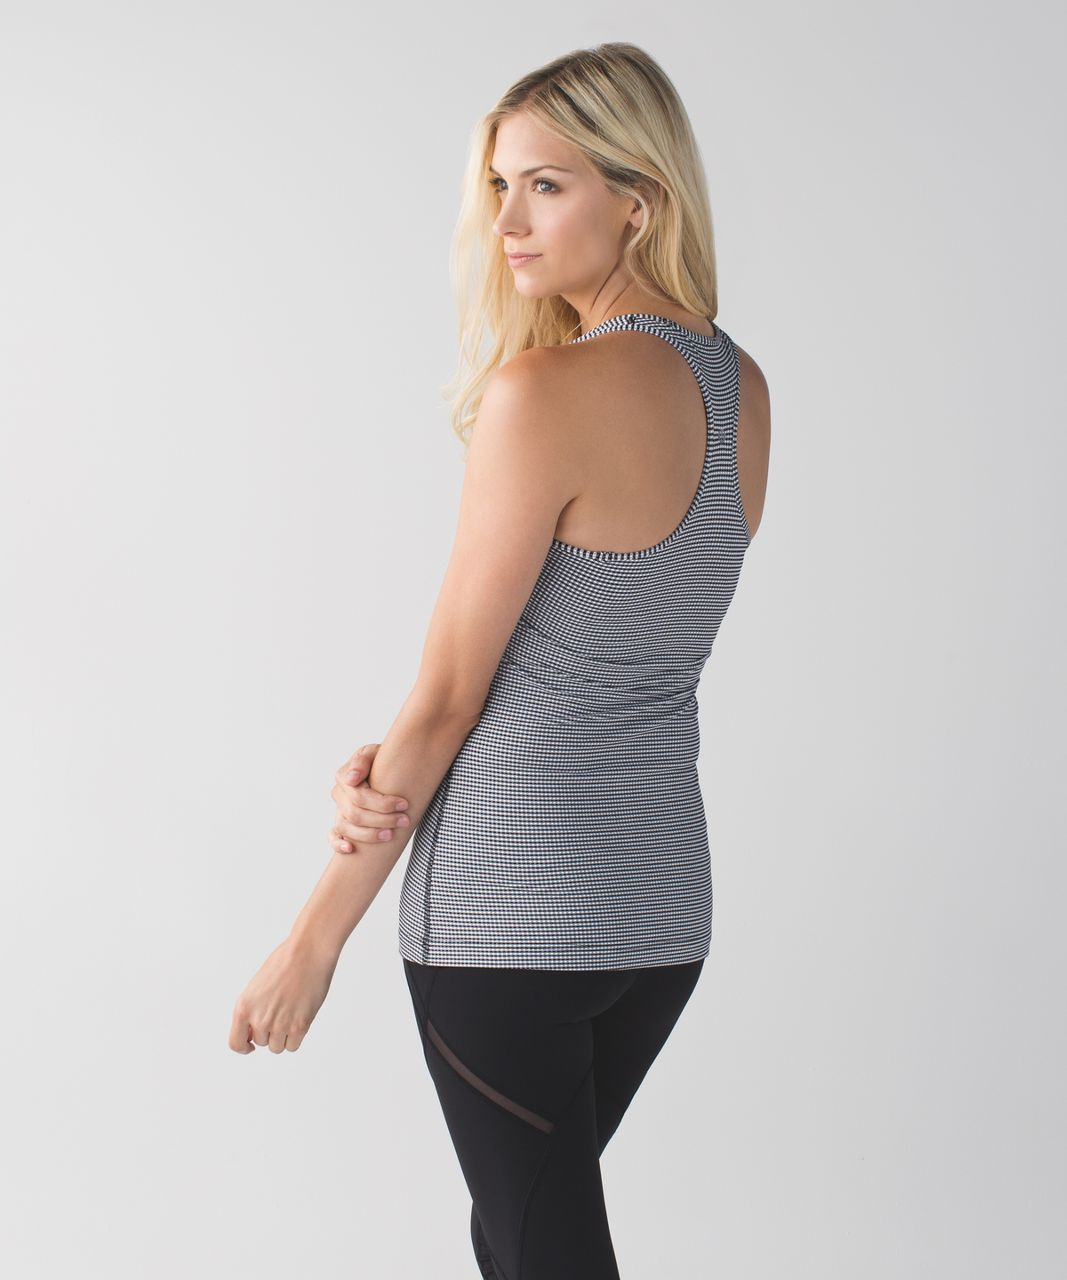 Lululemon Cool Racerback - Gingham Luon White Black